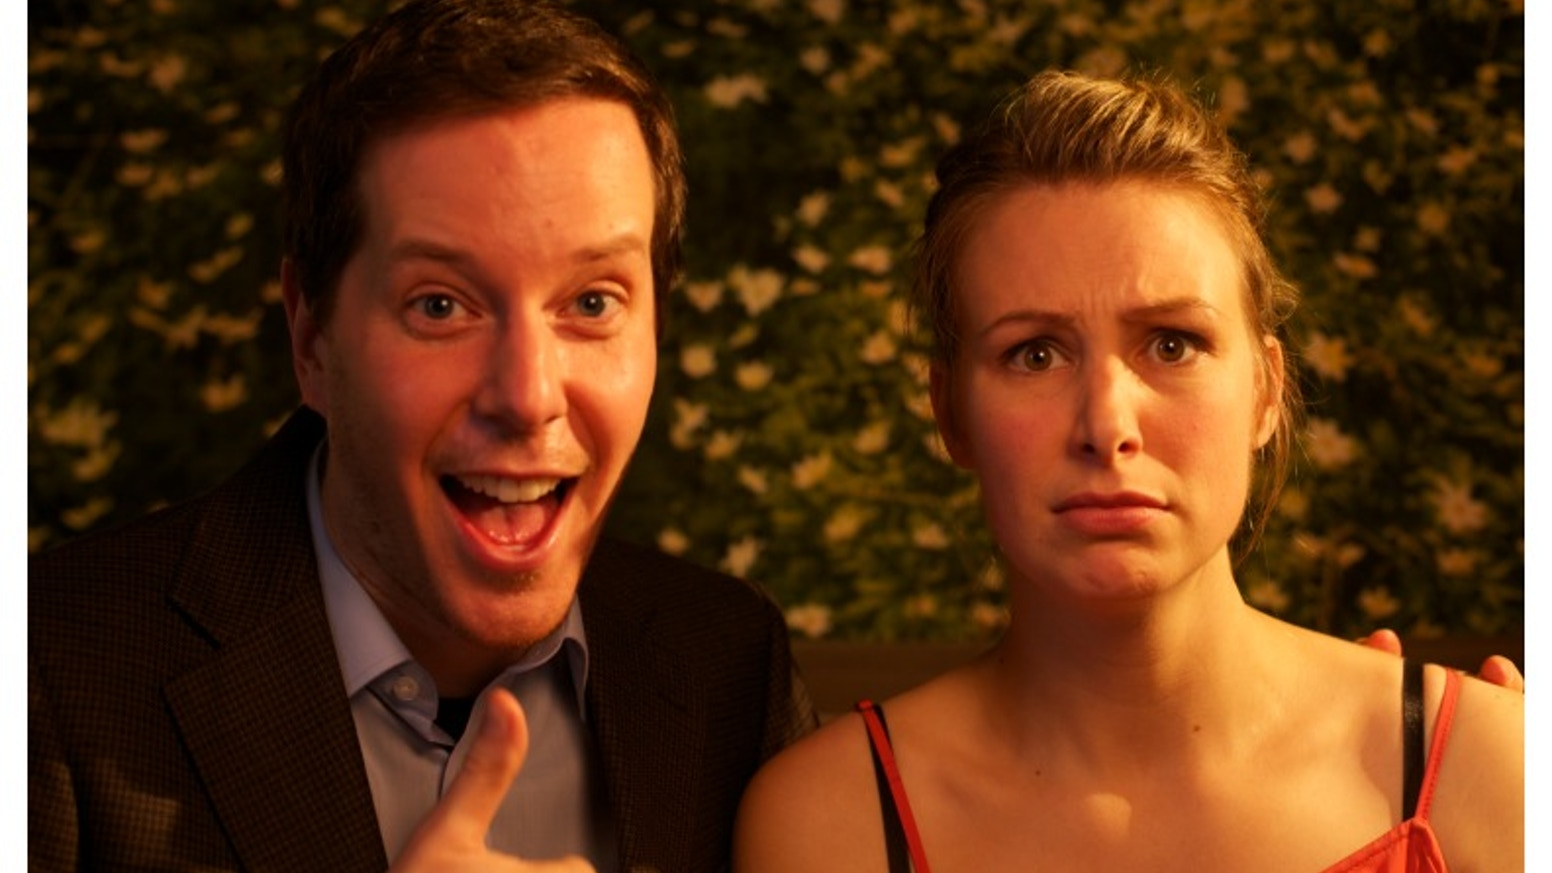 A short comedic film about falling in love in the wrong spacetime continuum.